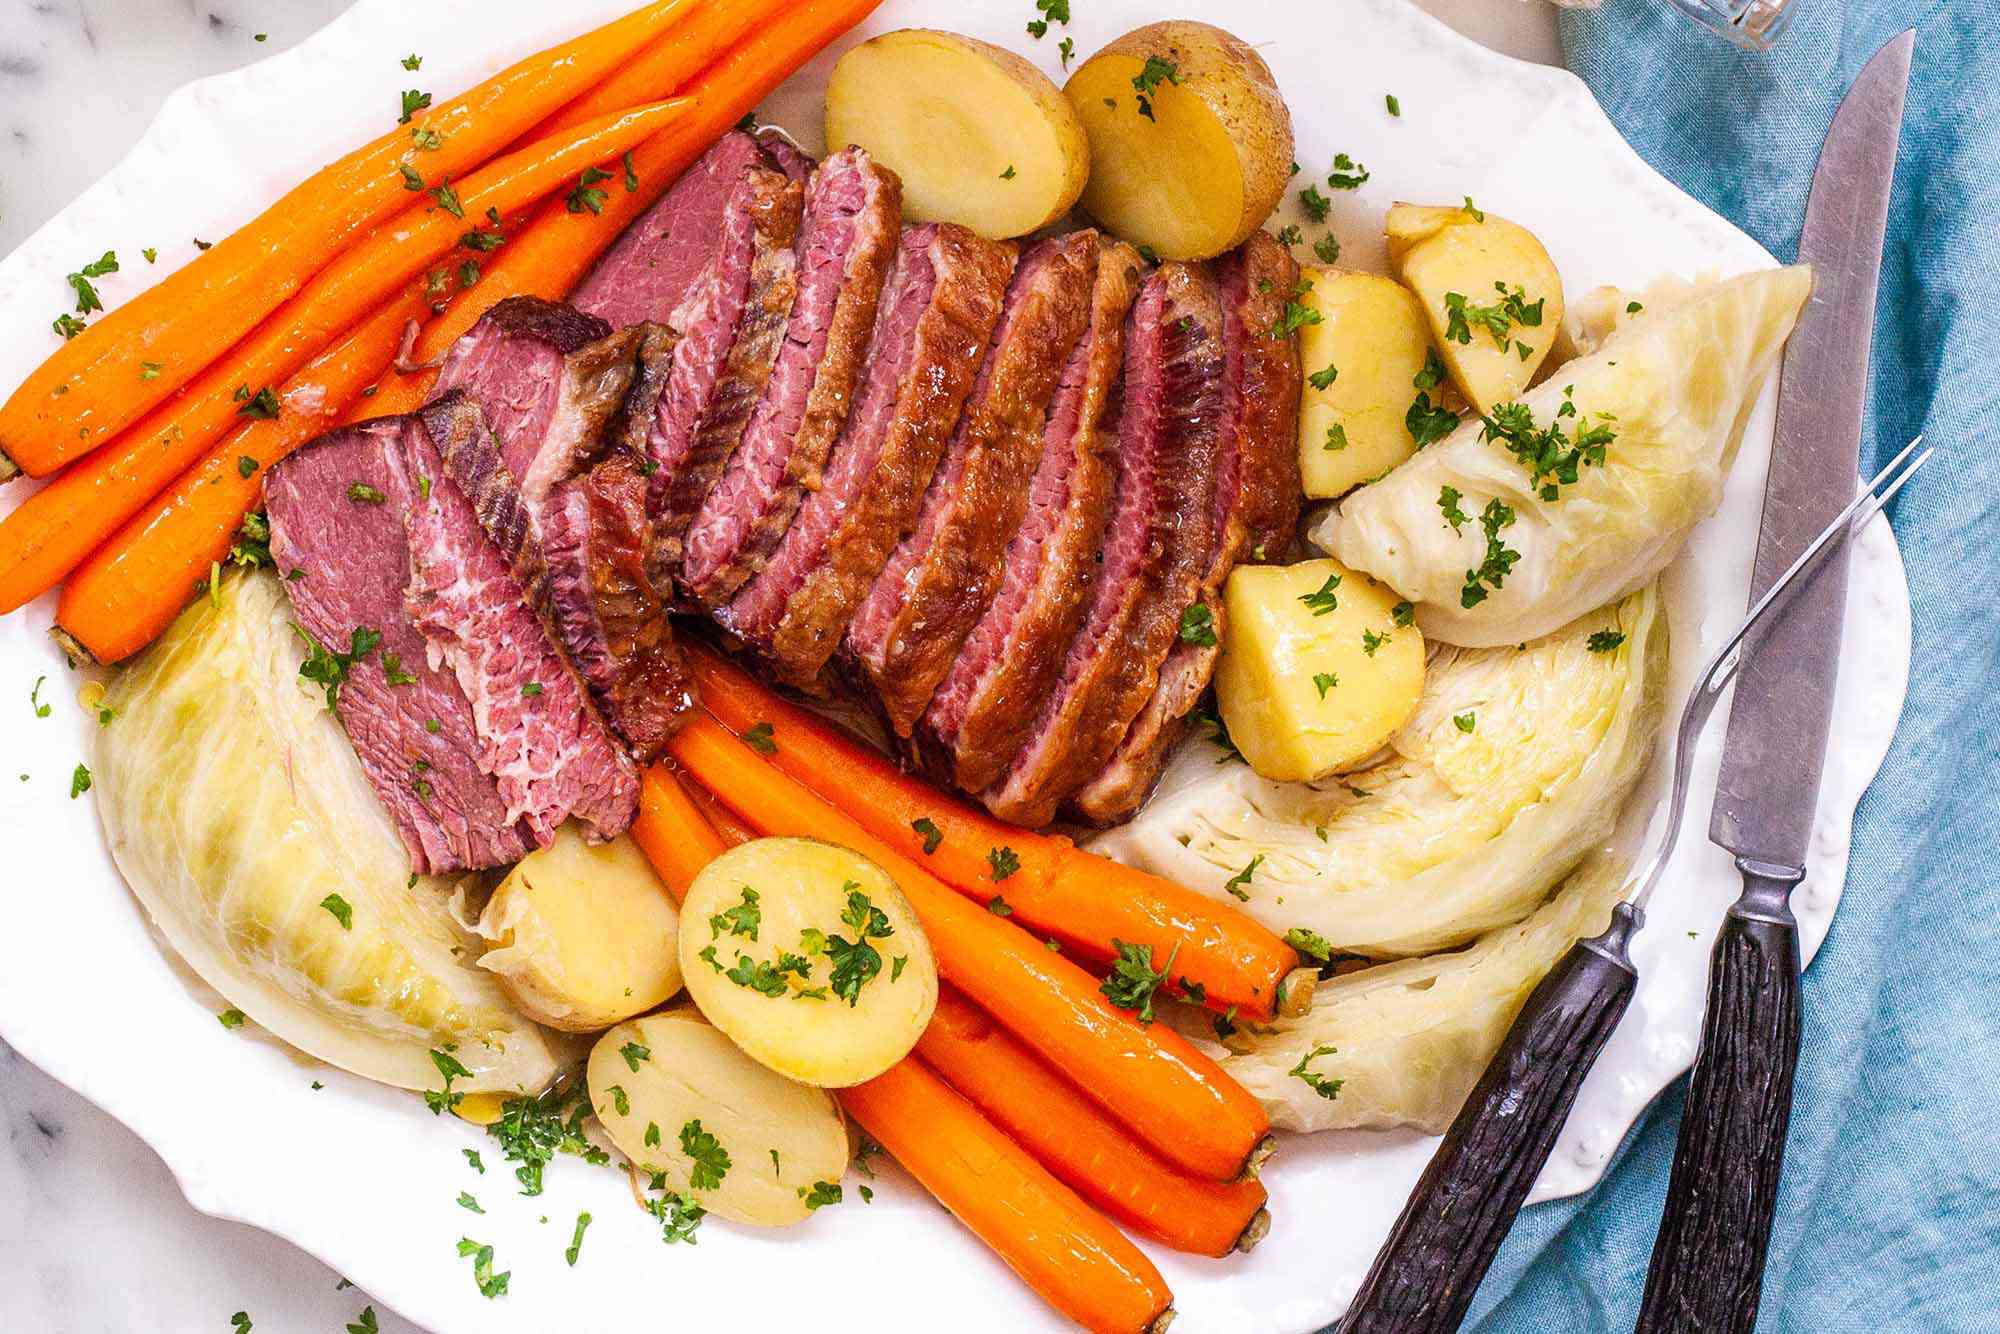 Best Boiled Corned Beef and Cabbage Recipe - platter of sliced corned beef, carrots, potatoes, and cabbage sprinkled with herbs